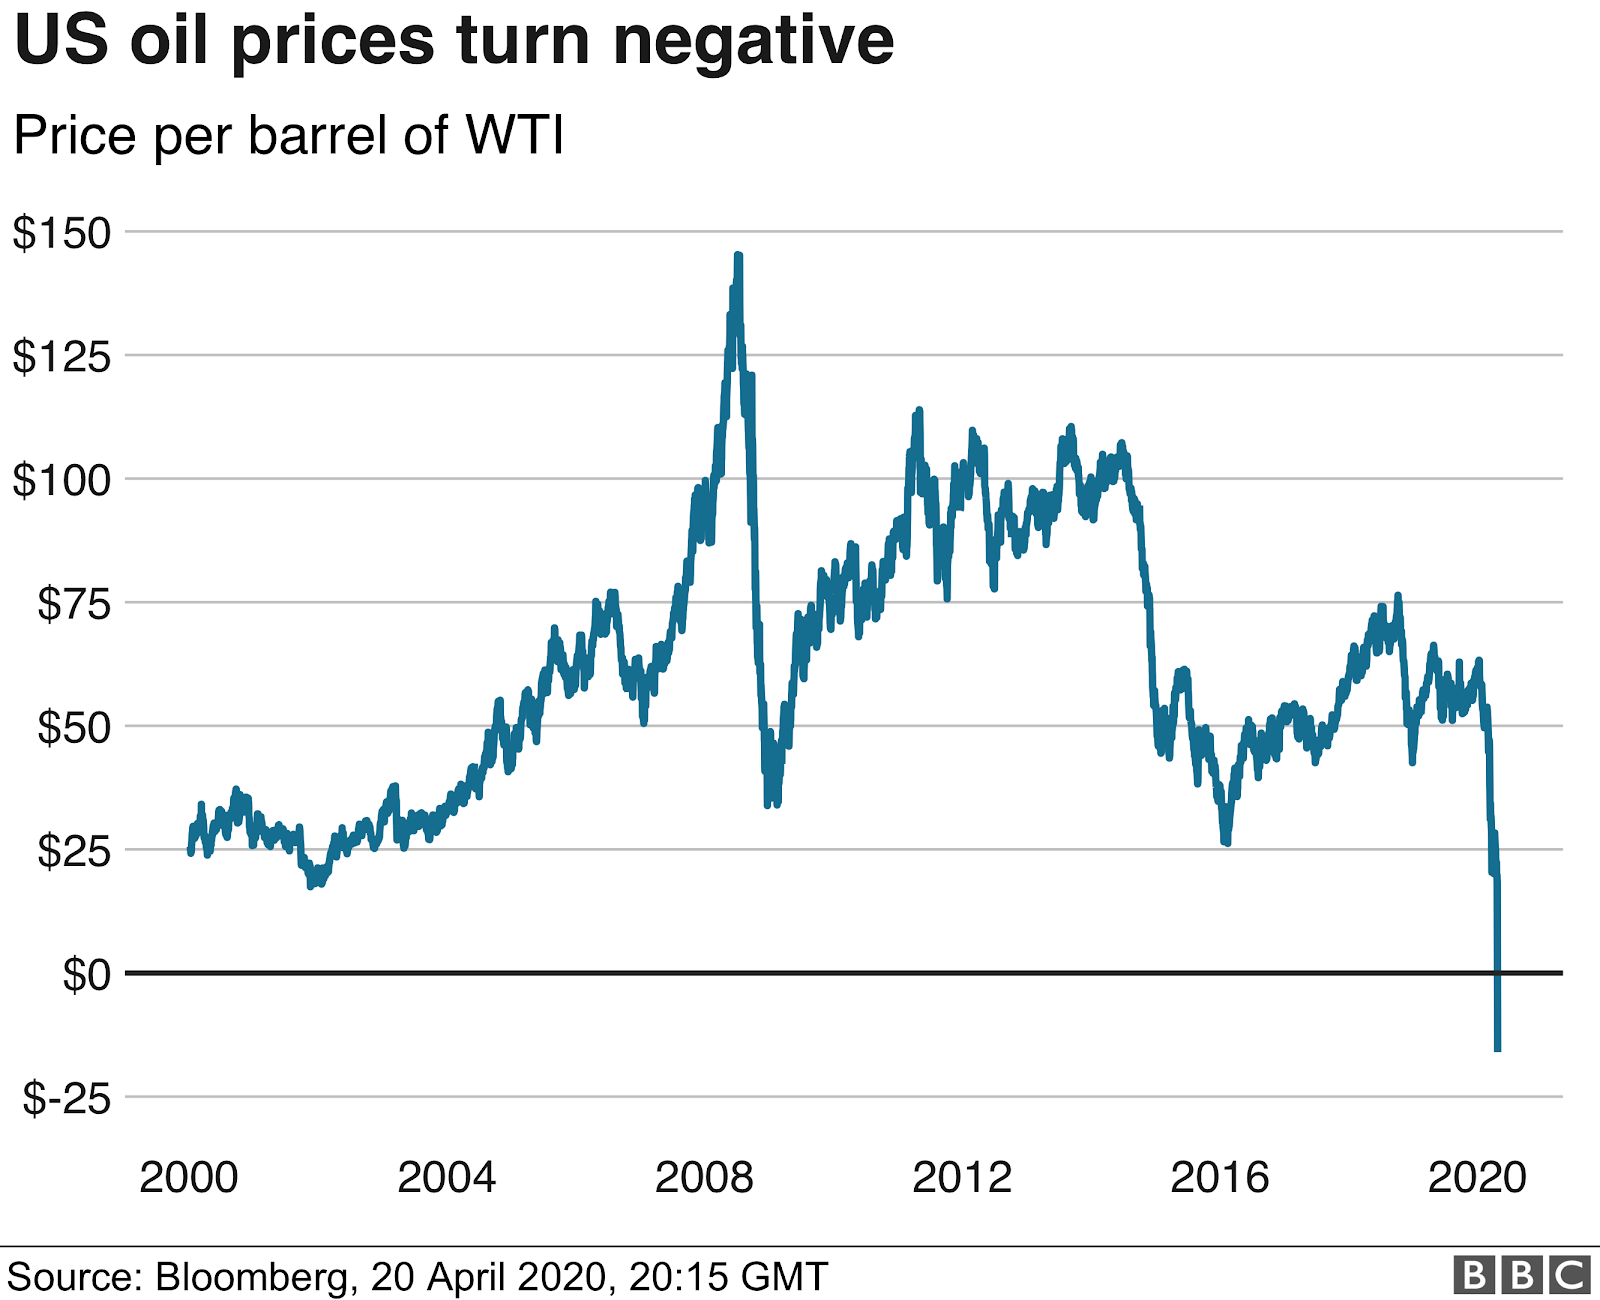 US Oil Price - Reurasia